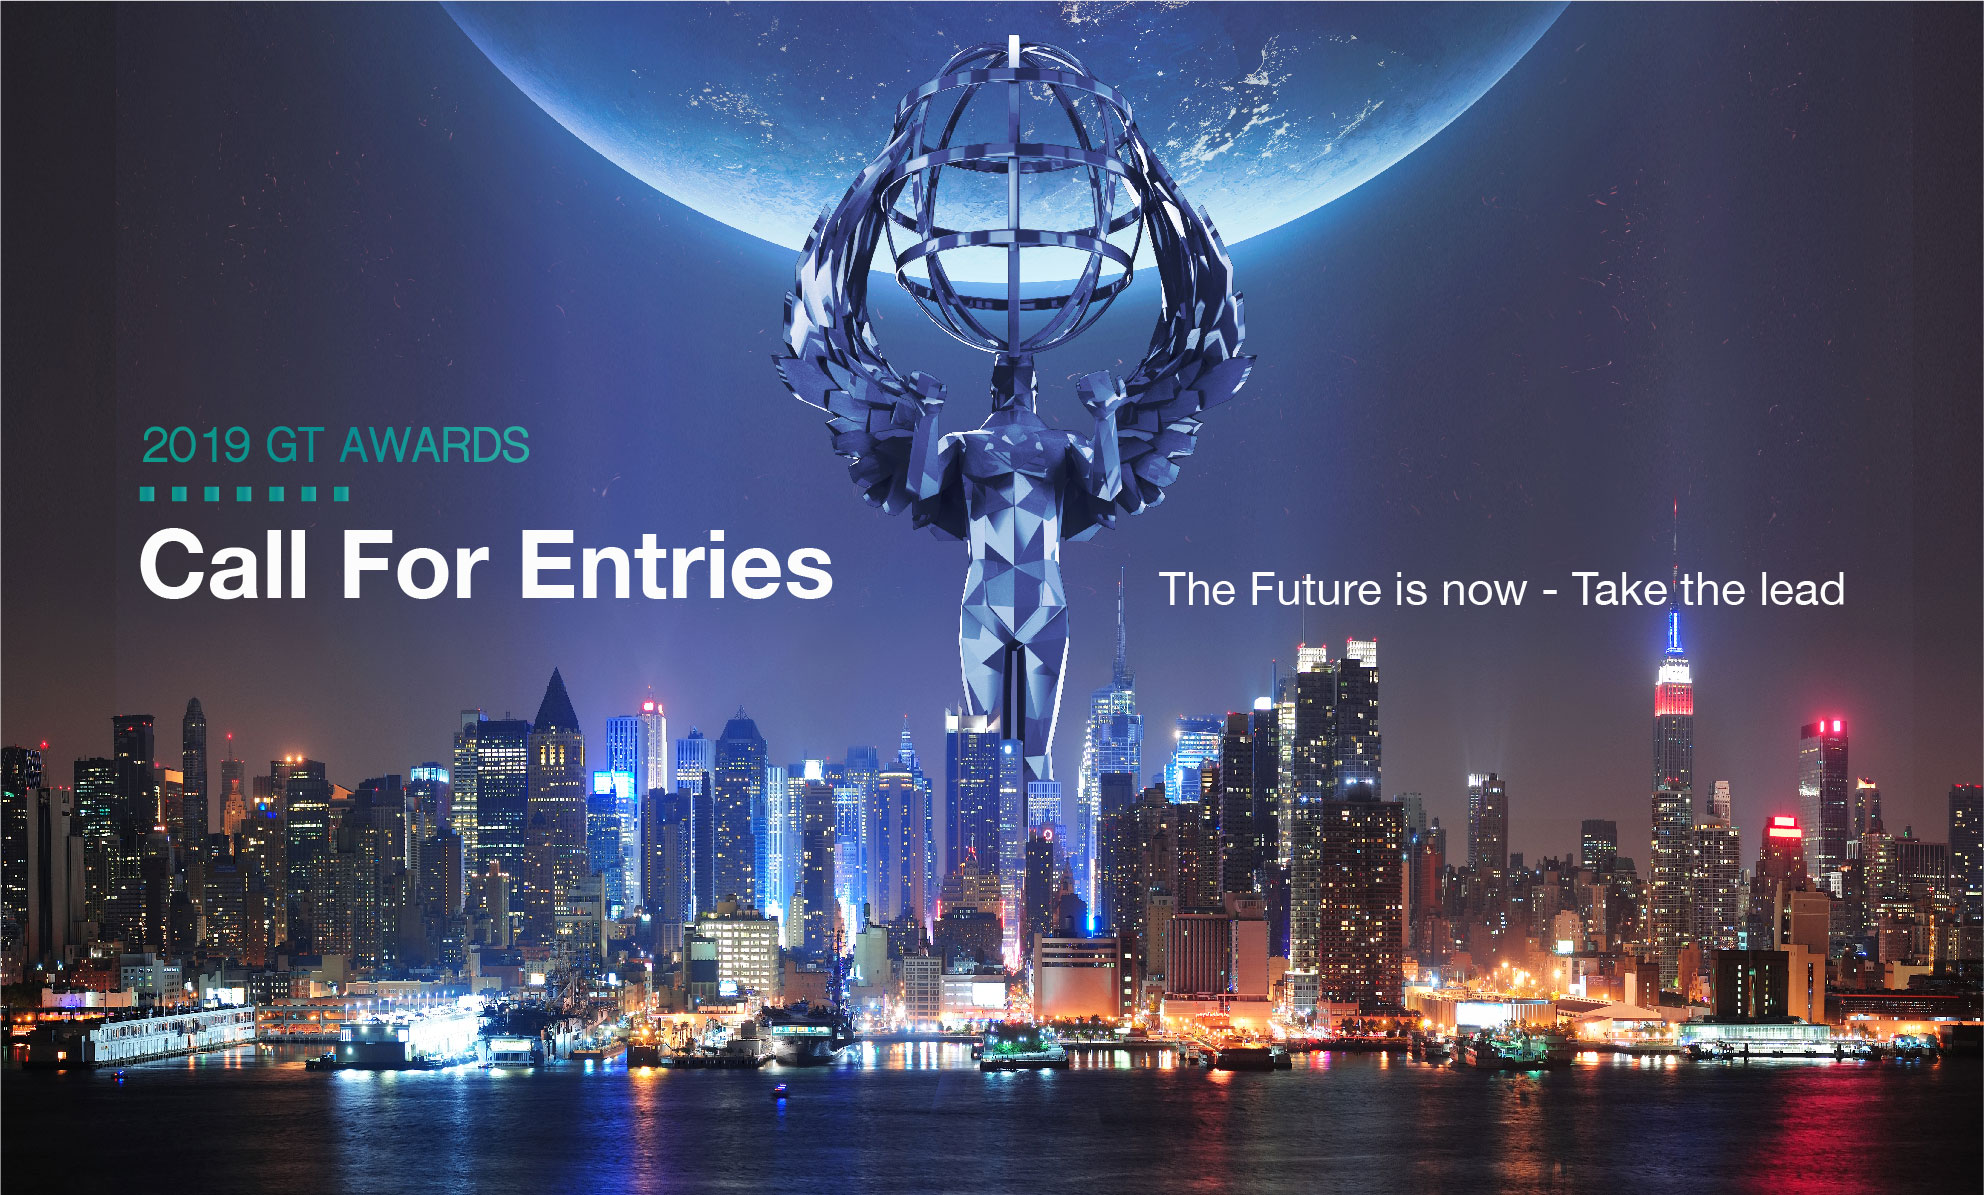 2019 GlobalTrend Marketing & Video Awards Call for Entries